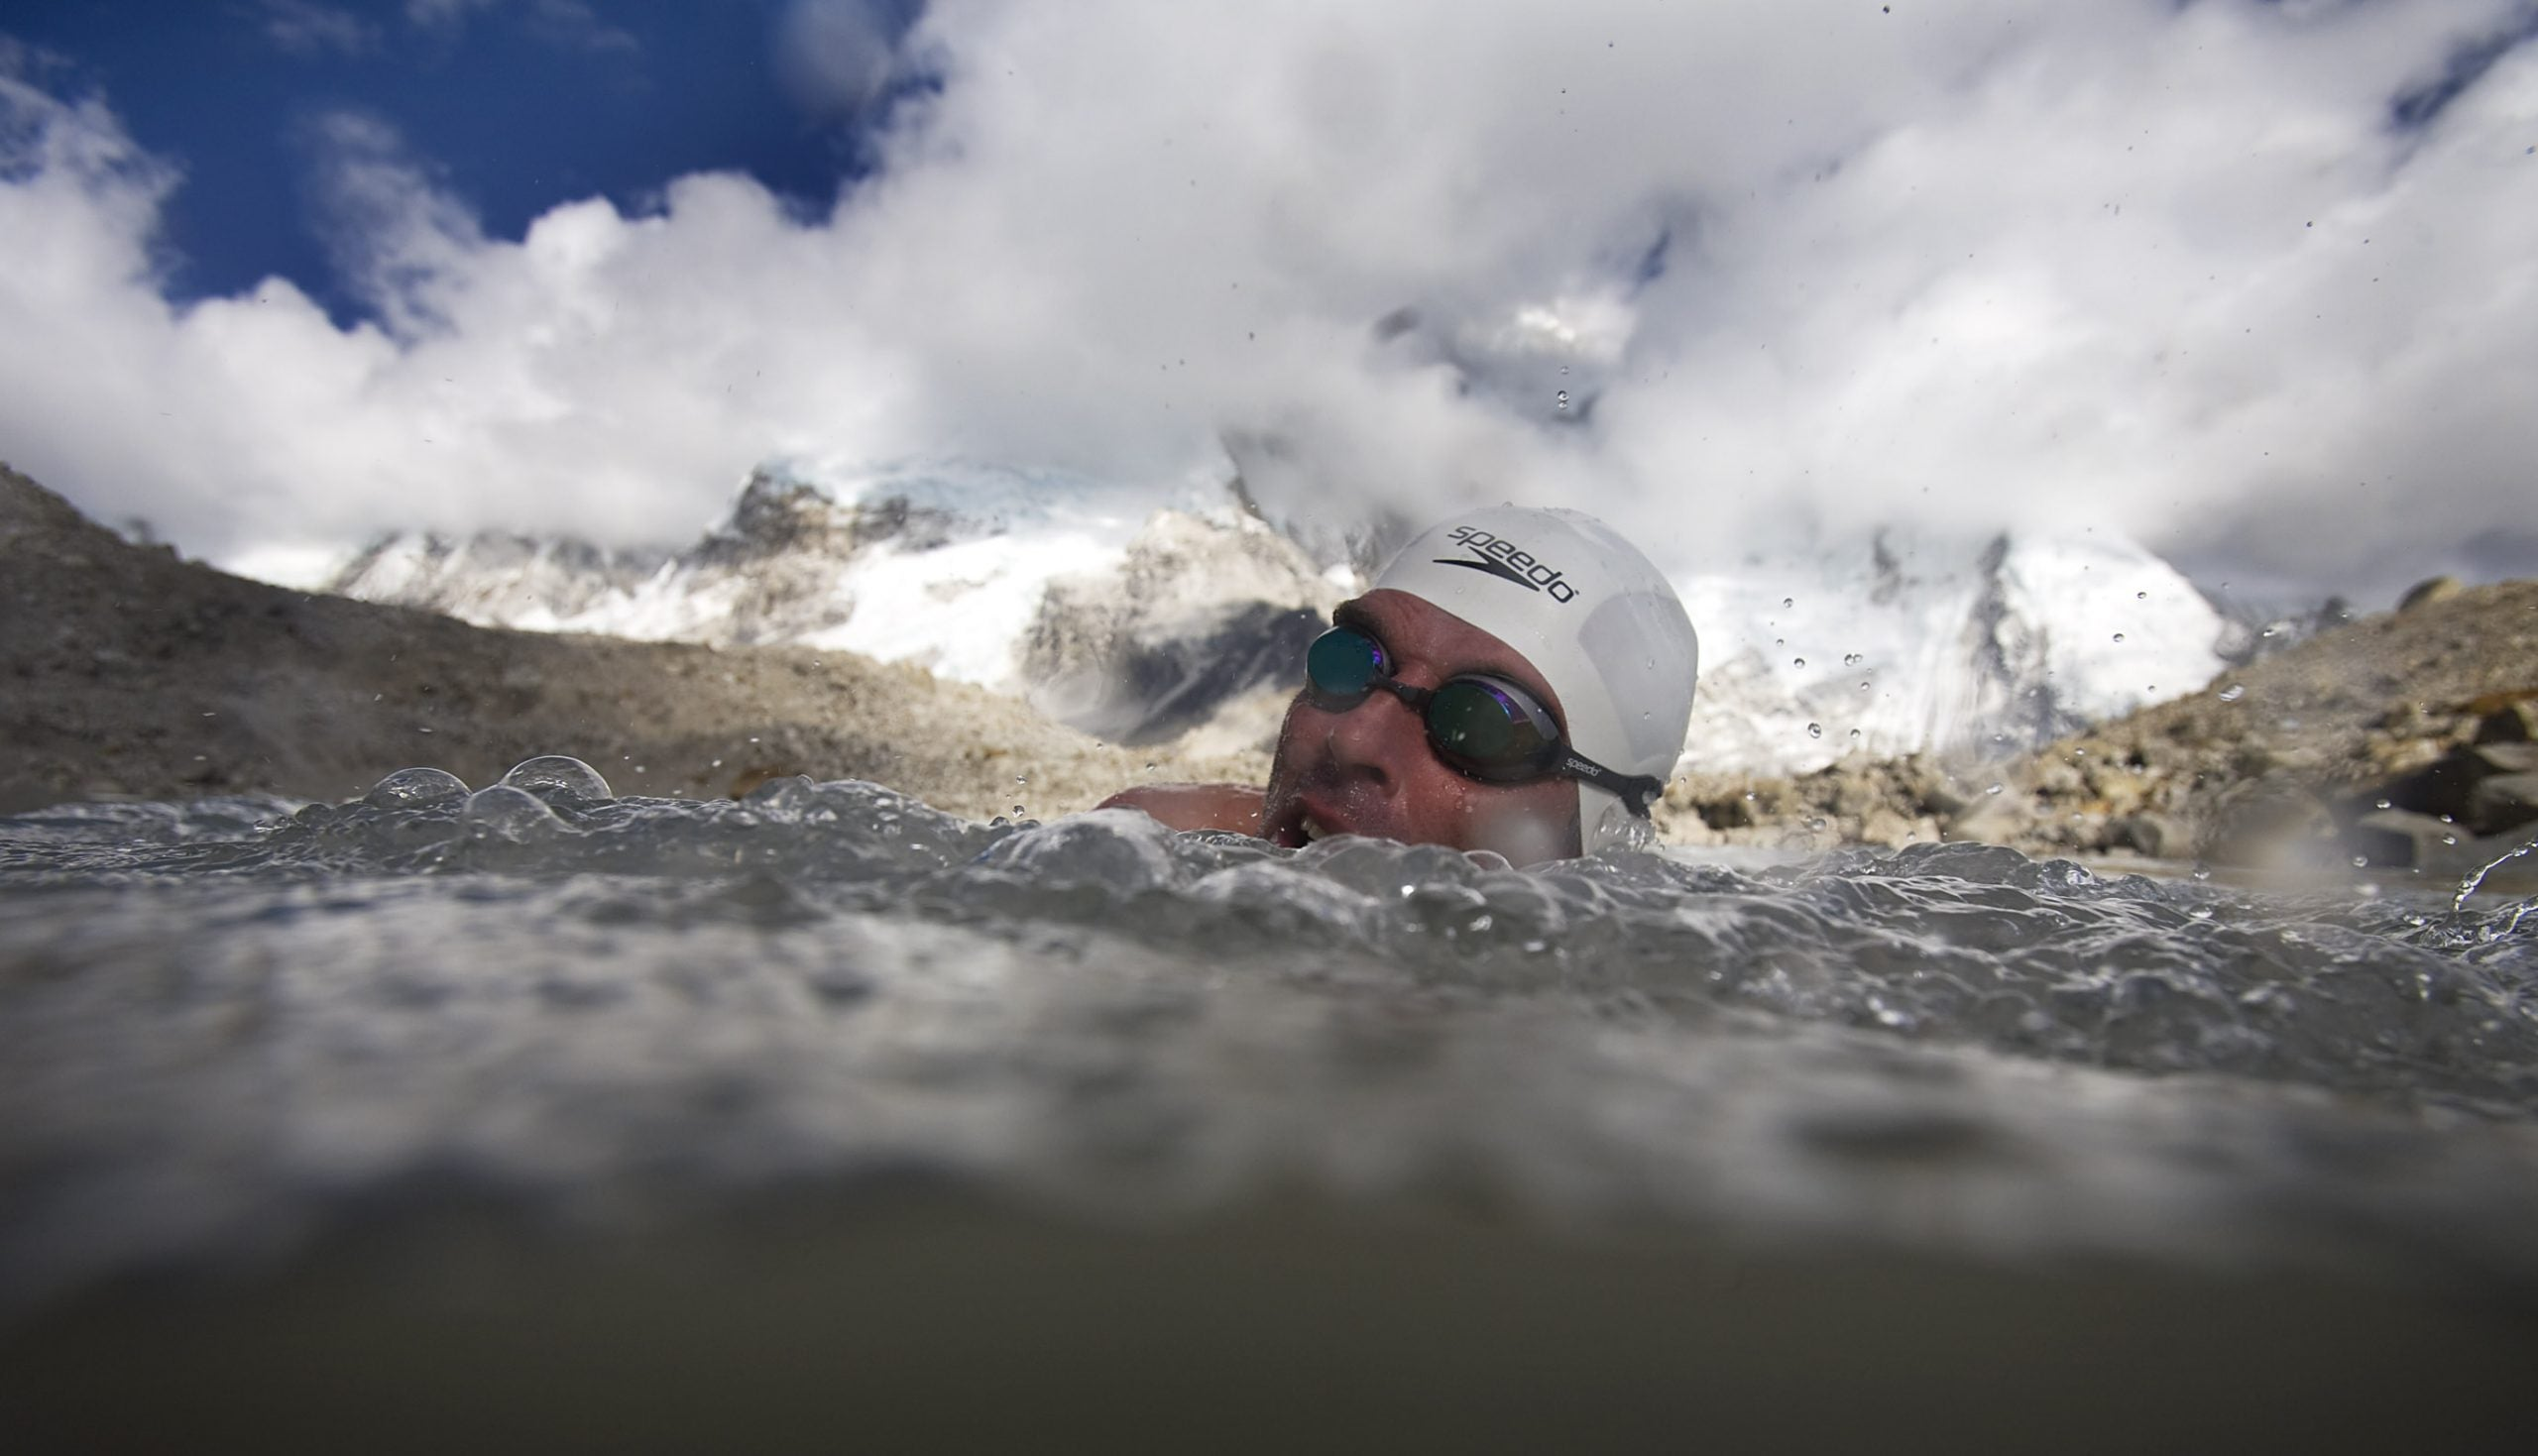 FIRST SWIM ON MT EVERESTEnvironmental campaigner and endurance swimmer Lewis Gordon Pugh completes a record 1,000m swim across a glacial lake (at 5,300m in altitude) under the summit of Mt Everest to draw attention  to the melting of the Himalayan glaciers.  The expedition was sponsored by Pick n Pay and SAP.  Photo by Michael Walker via Sat4Rent